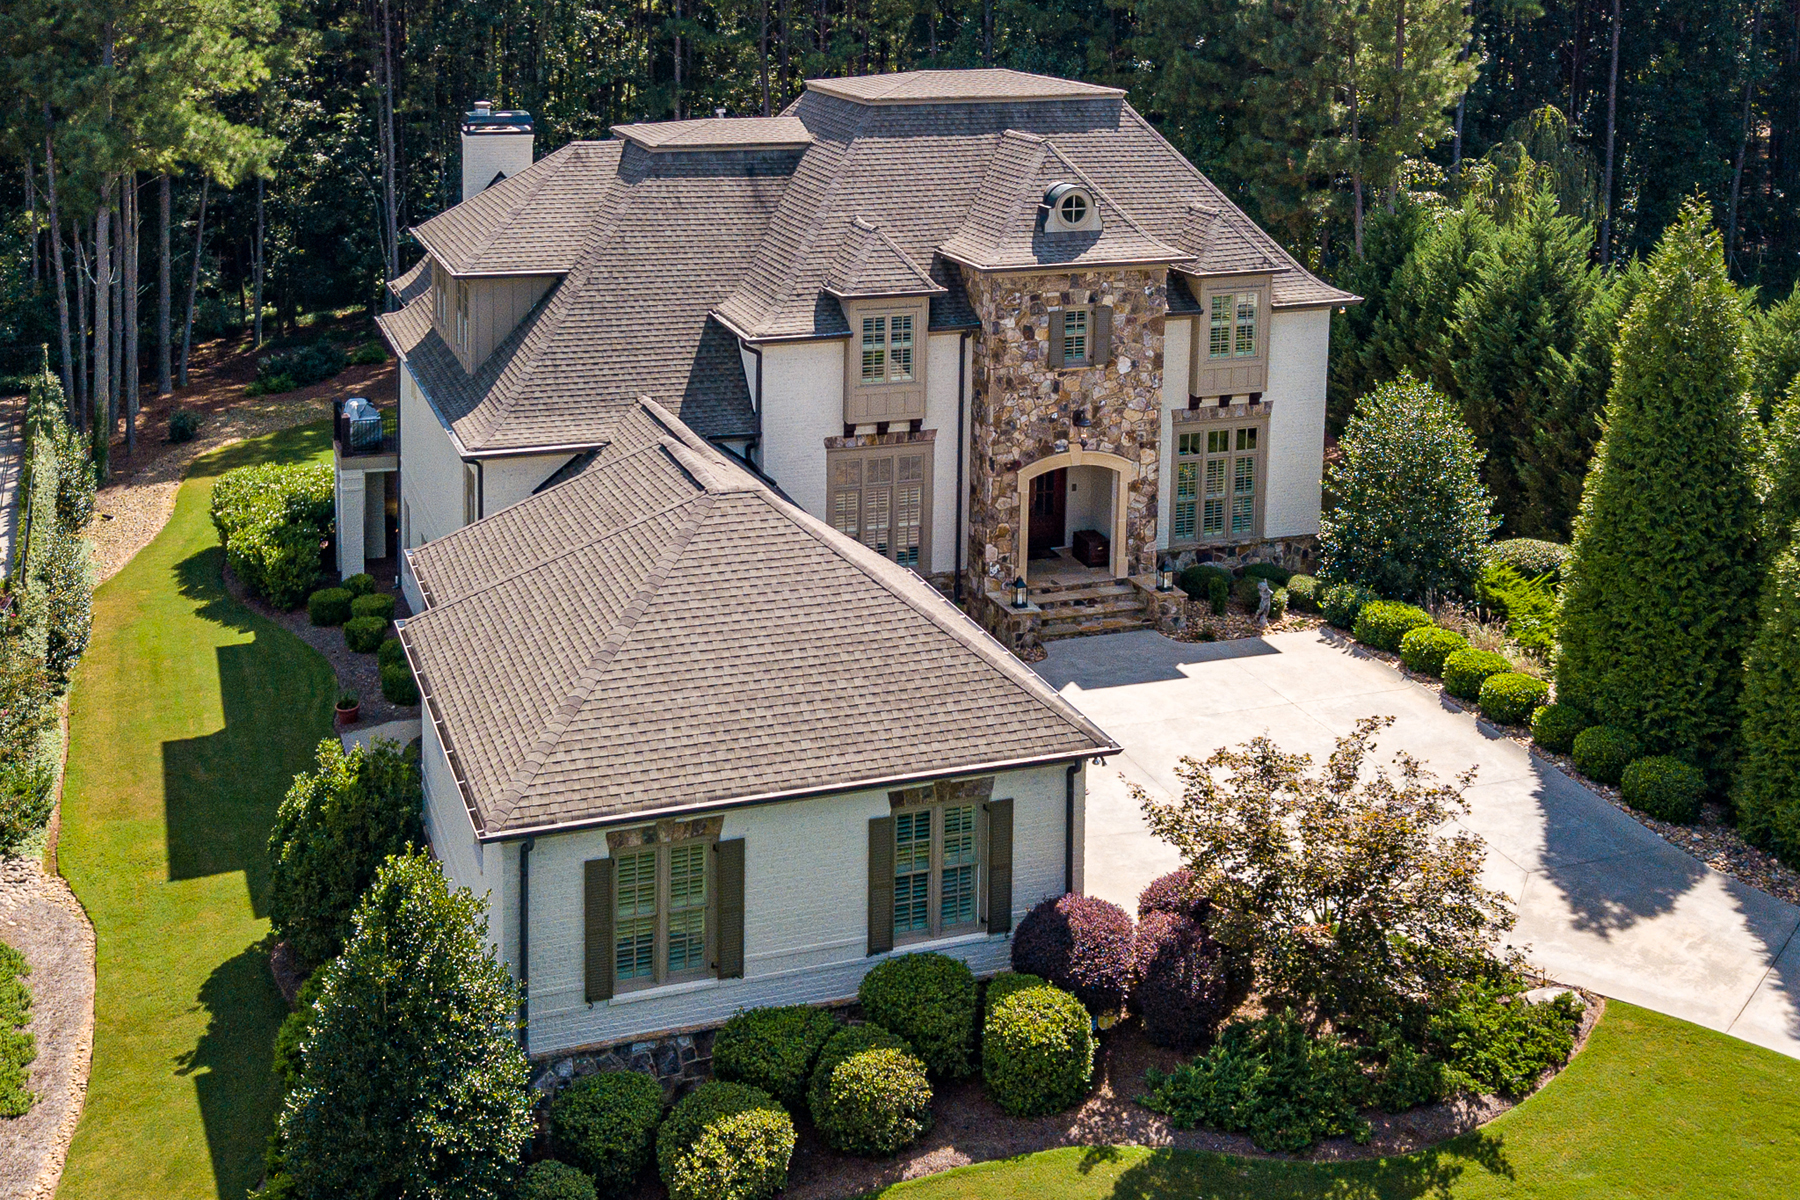 Single Family Homes for Sale at Desirable Newhaven Home 185 Newhaven Drive, Fayetteville, Georgia 30215 United States